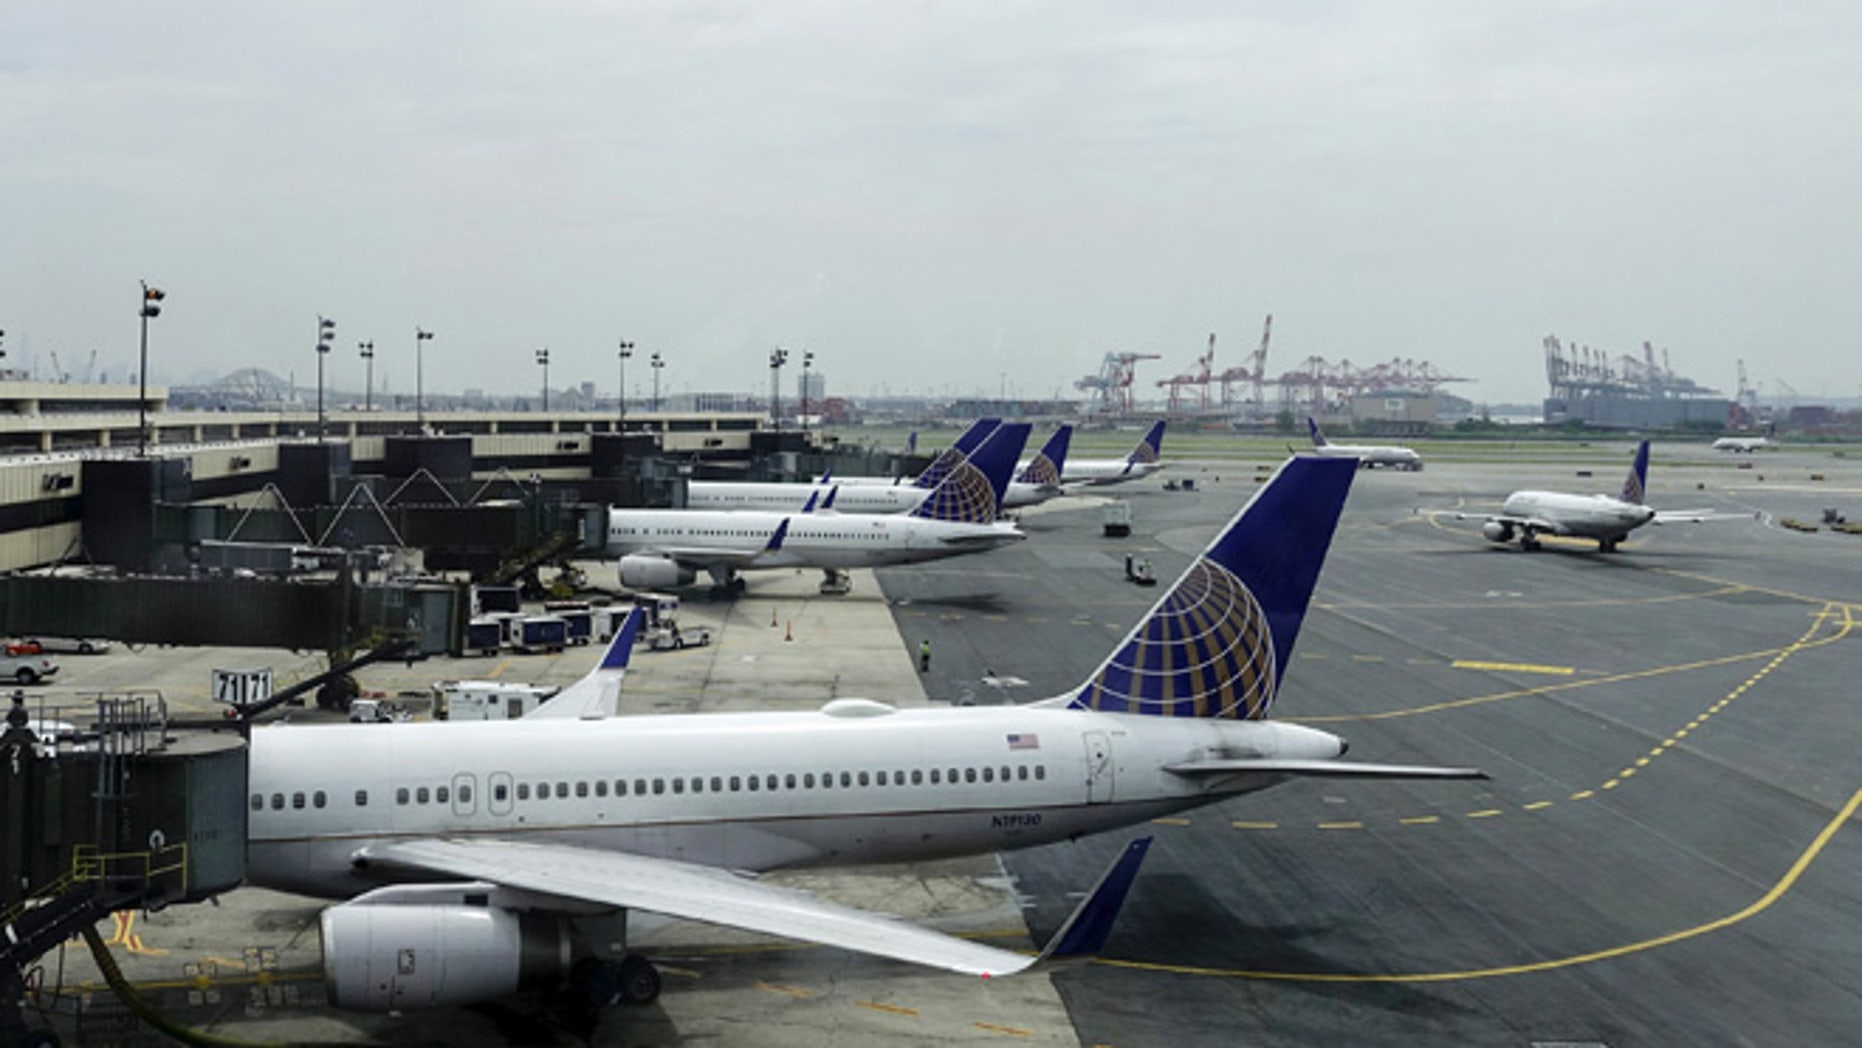 File photo -United Airlines planes are seen on platform at the Newark Liberty International Airport in New Jersey, July 8, 2015. (REUTERS/Eduardo Munoz)